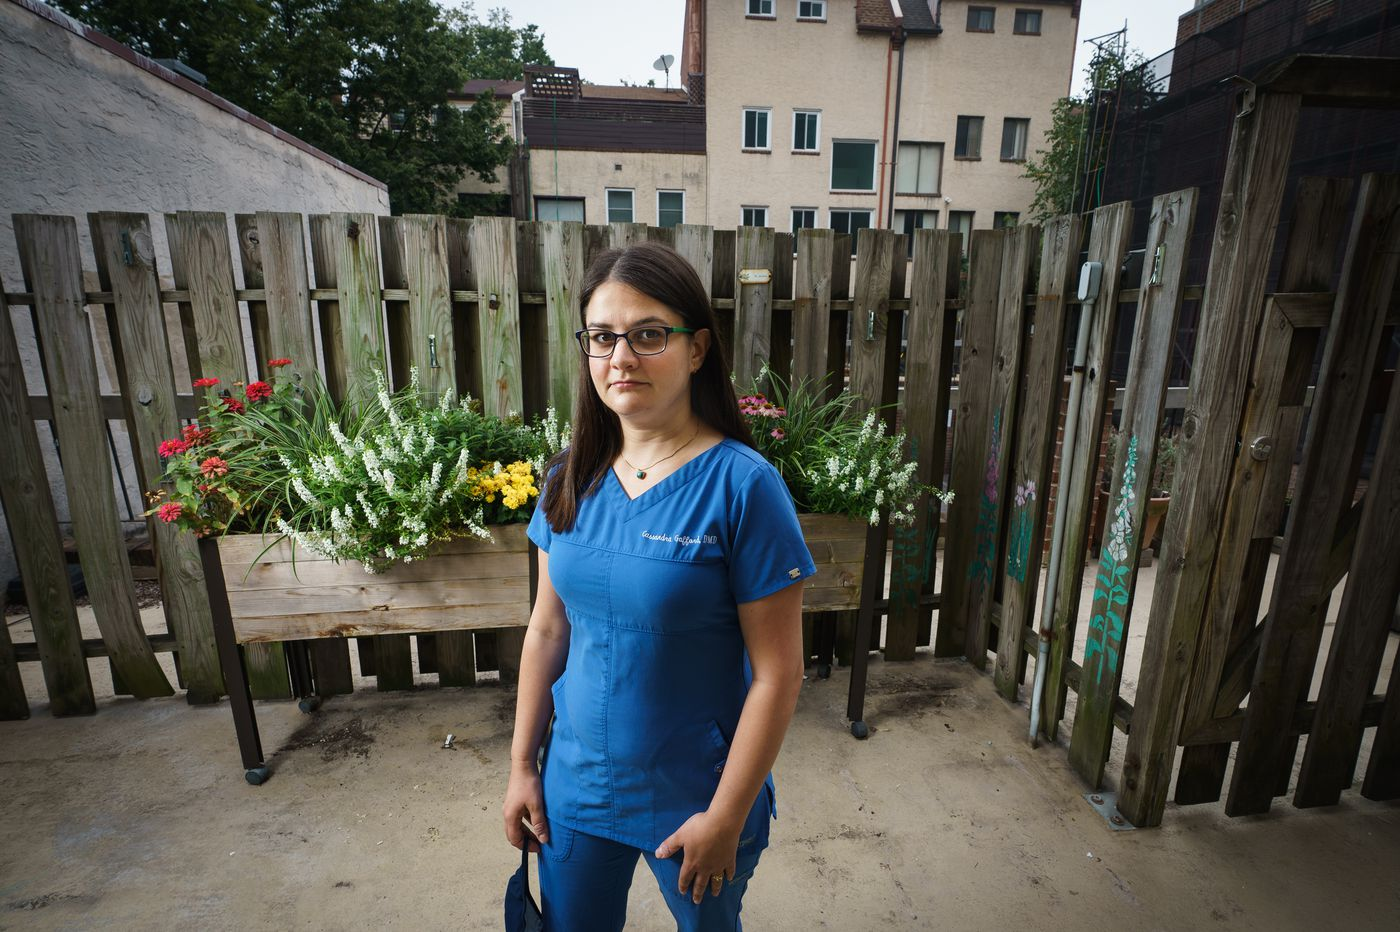 The pandemic is a once-in-a-generation test for Philly moms. Most say they're struggling.